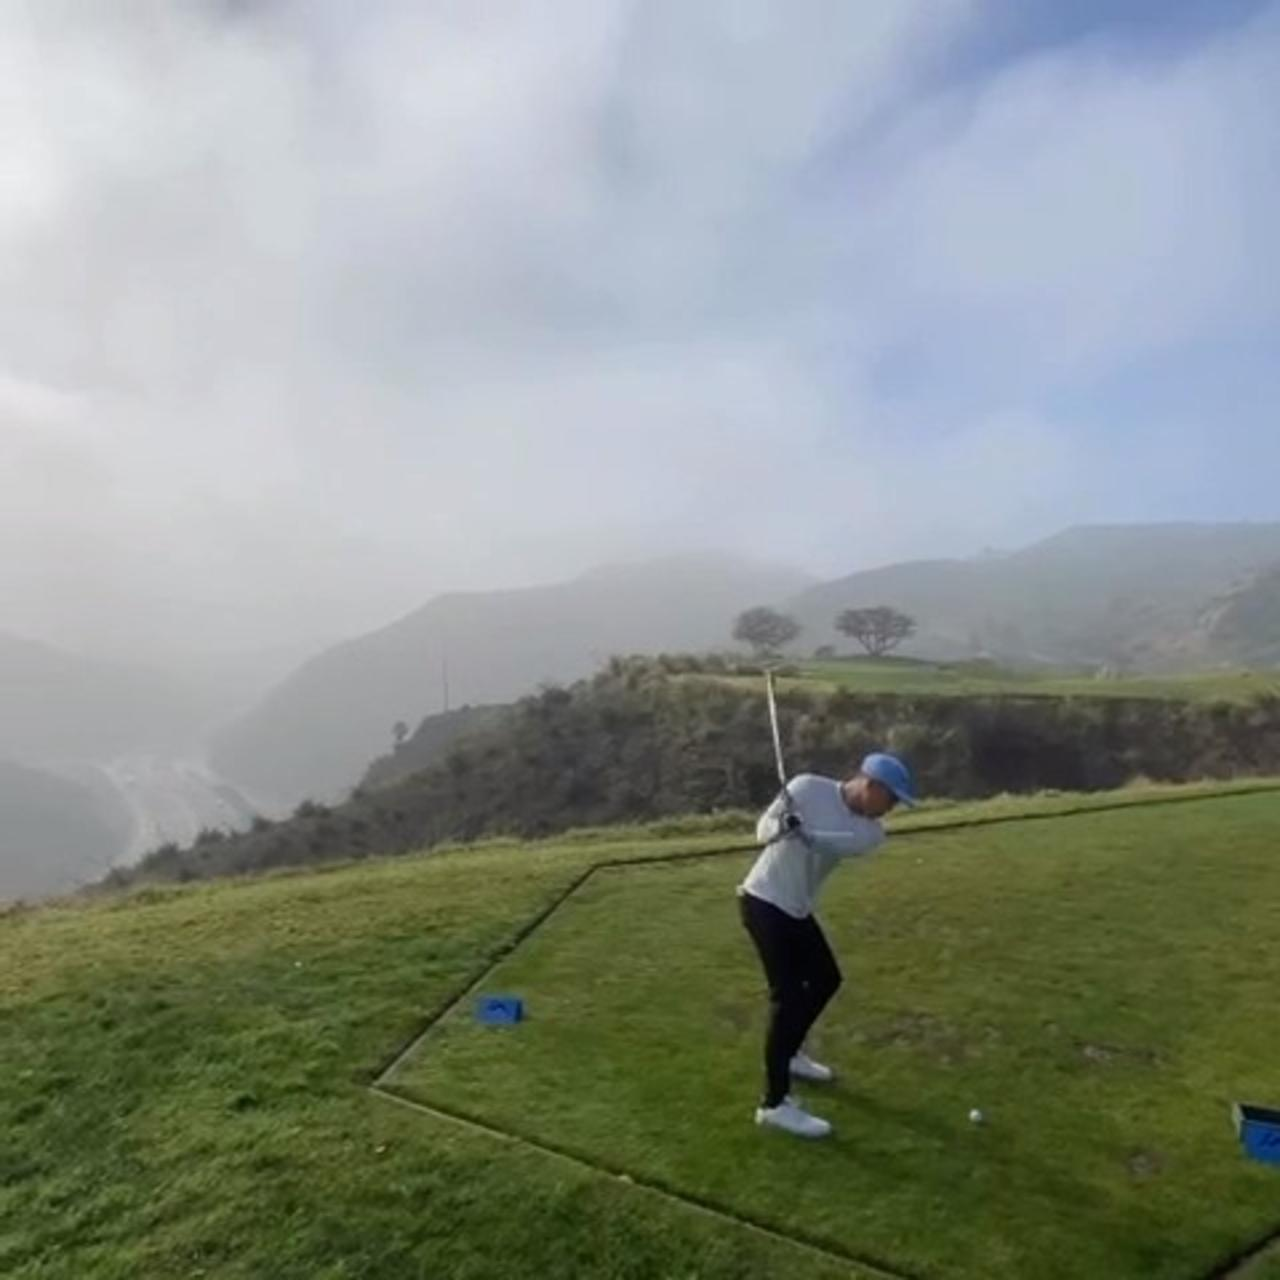 Golf Club Slips Out of Guy's Hands While He Tries to Take Shot